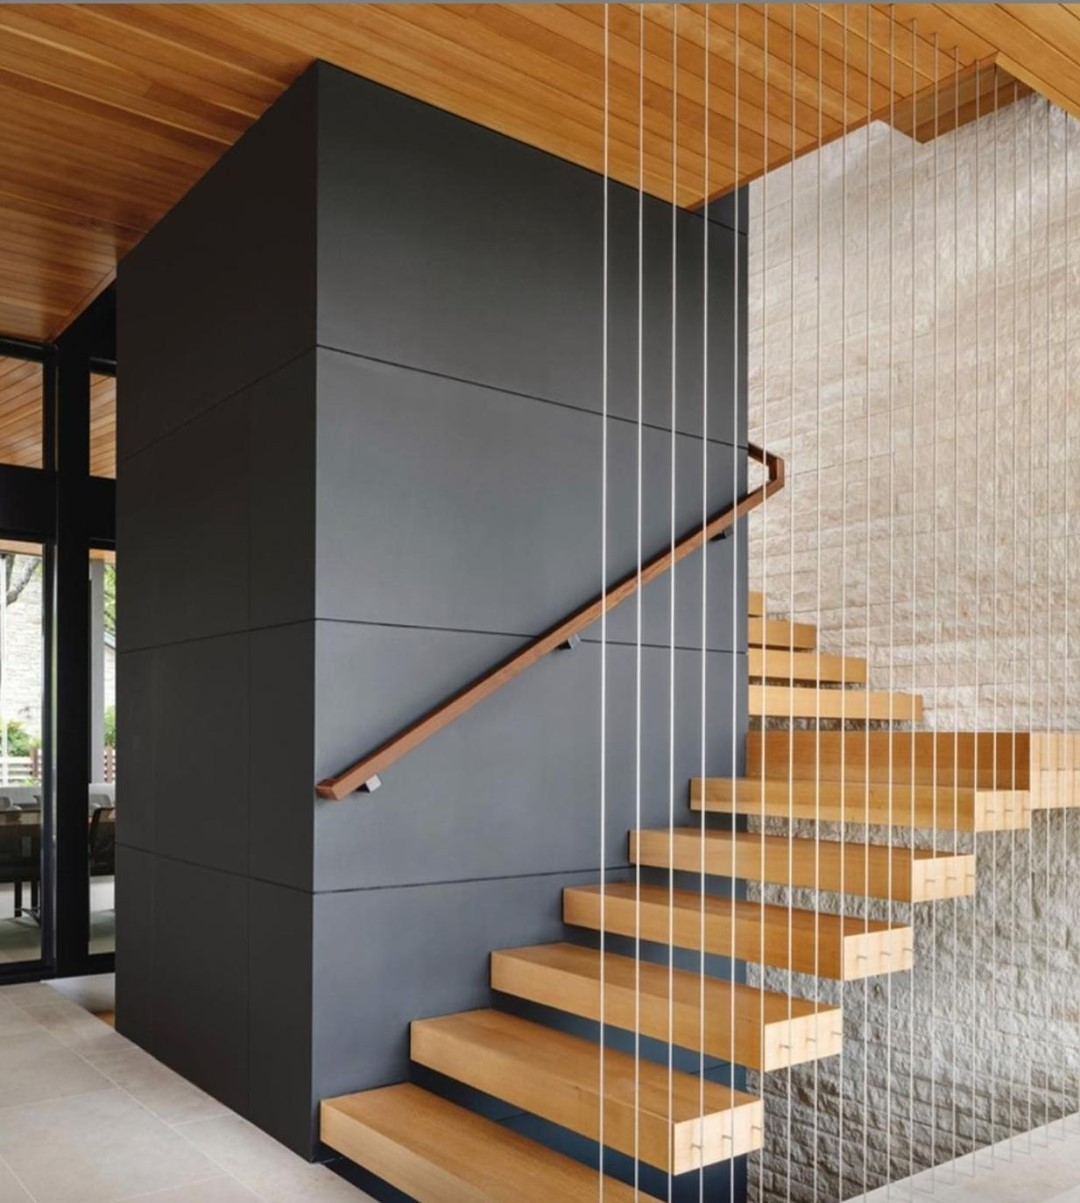 You would never know the amount of steel needed to make this beautiful cantilevered staircase seem so light and airy.   And that's exactly how we know we're doing a good job.